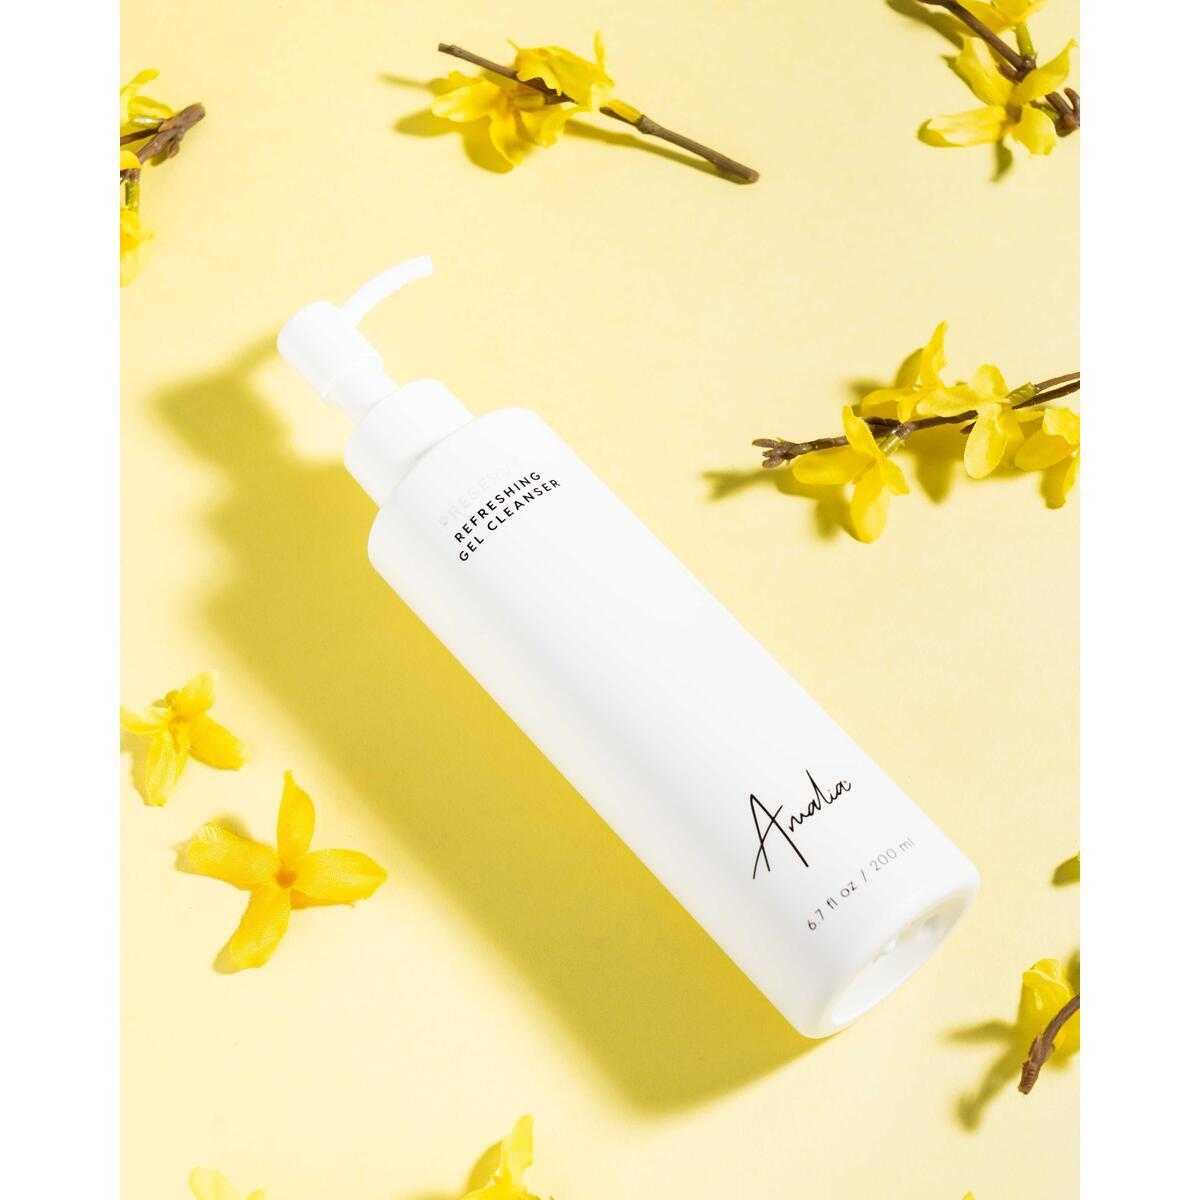 Amalia Refreshing Gel Cleanser - Natural Exfoliating Face Cleanser with Pineapple Enzyme, Green Tea & Acai - Gentle for Sensitive Skin